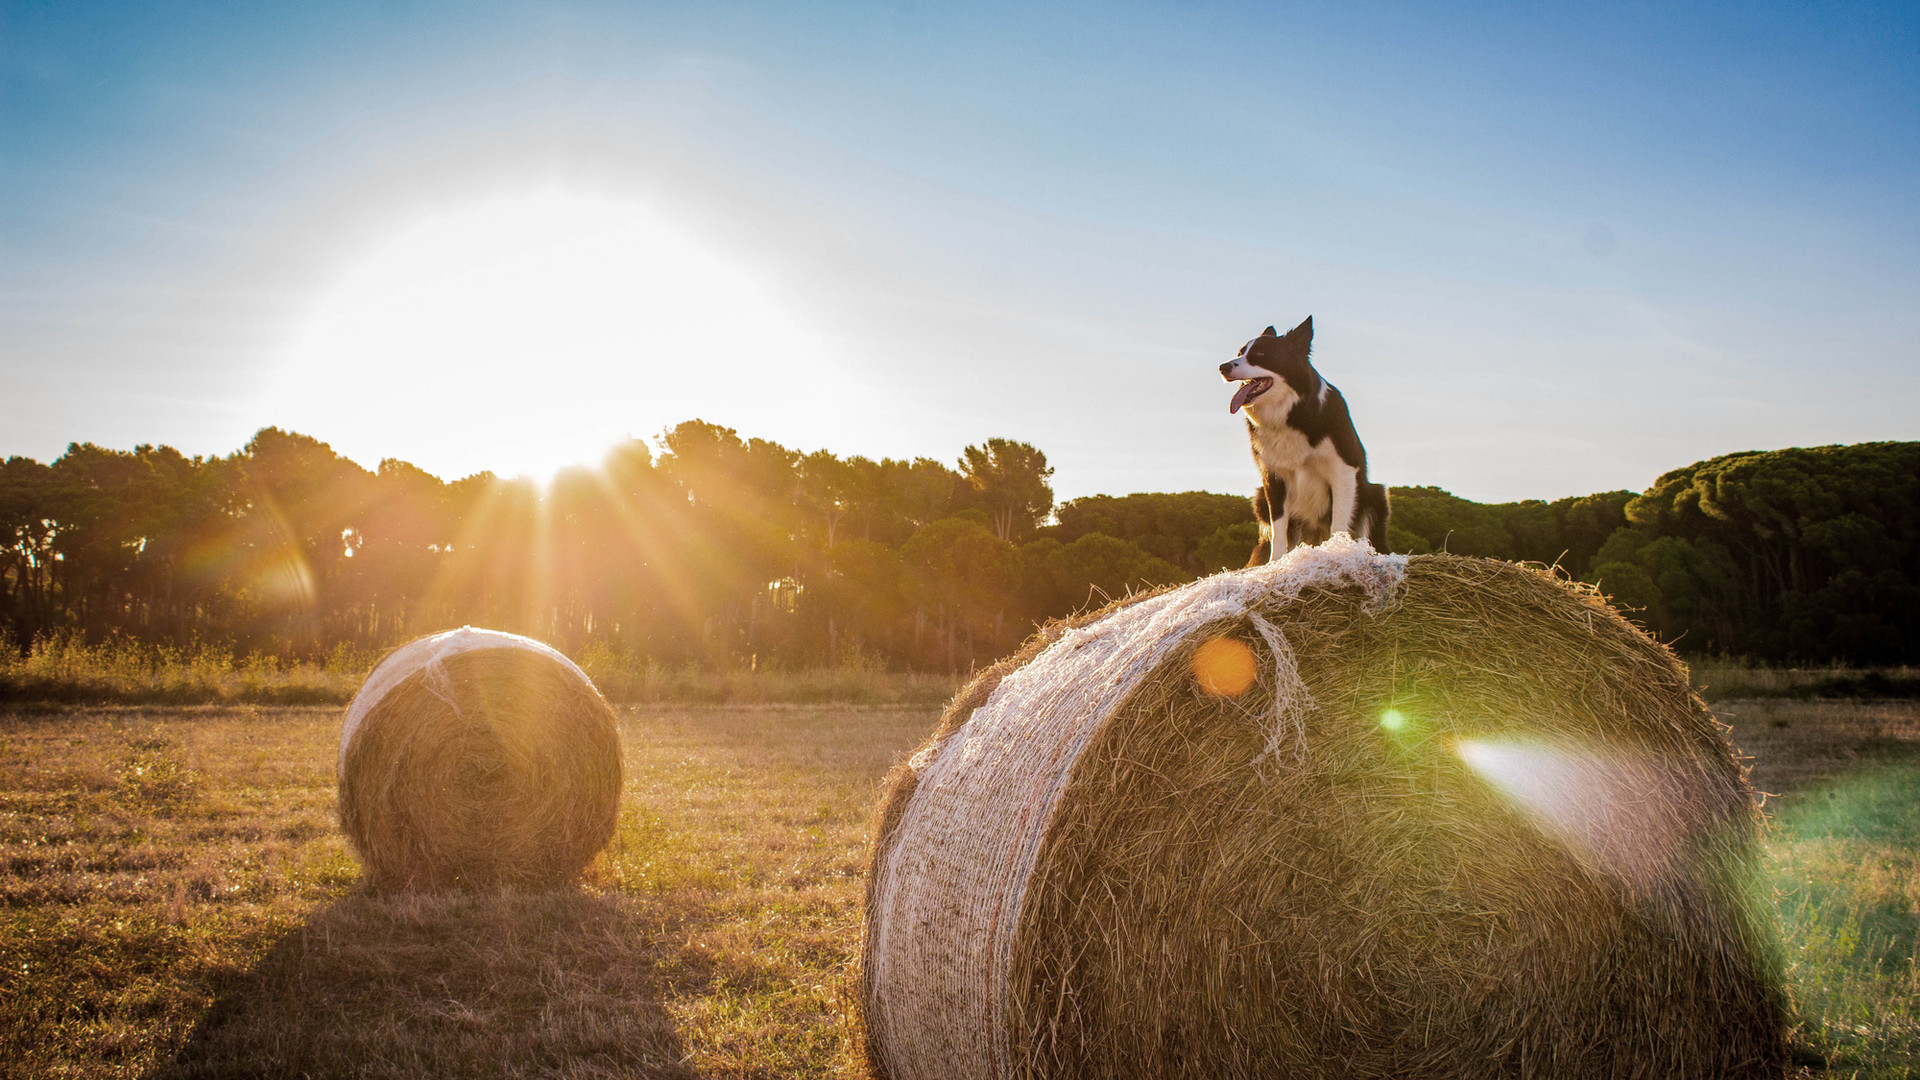 Dog in Farm